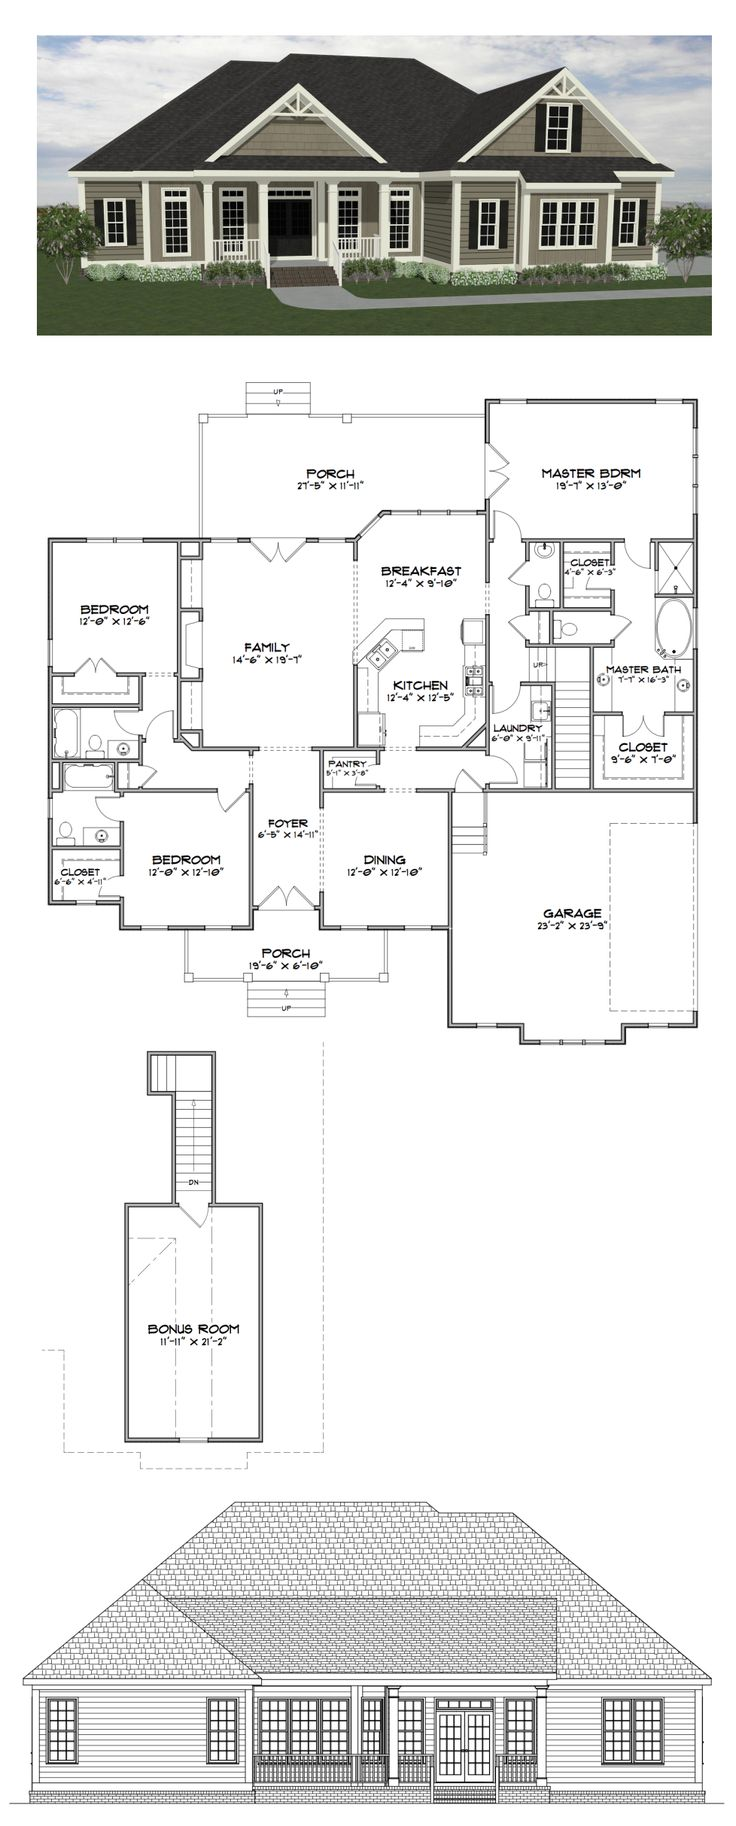 best 25 bonus rooms ideas on pinterest mancave ideas man cave plan 3 bedroom bath home with 2282 heated square feet bonus room adds 279 sf